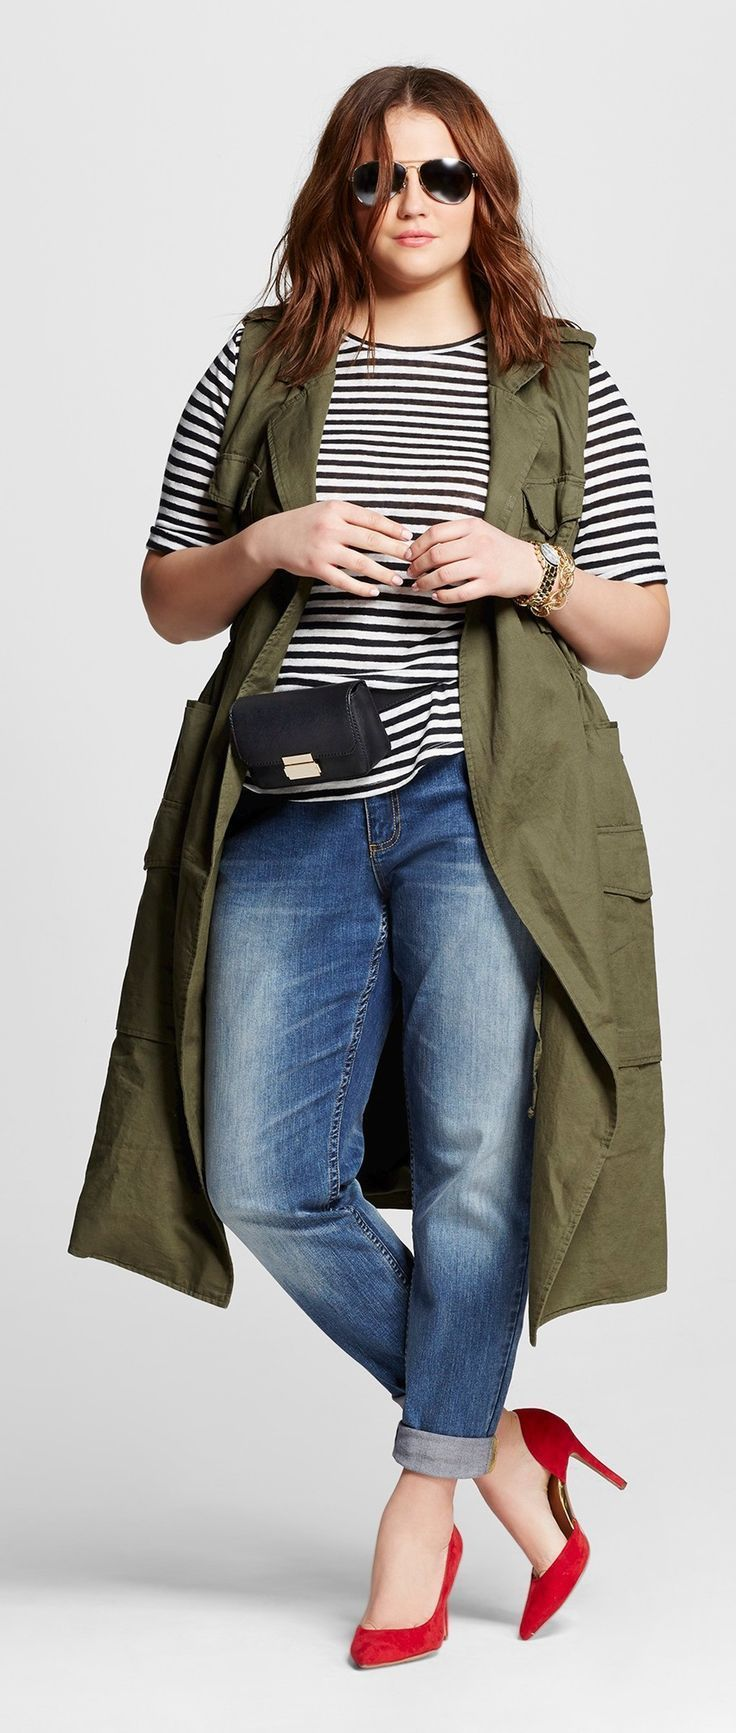 25 best ideas about plus size casual on pinterest plus size style women 39 s plus size style - Diva style fashion ...